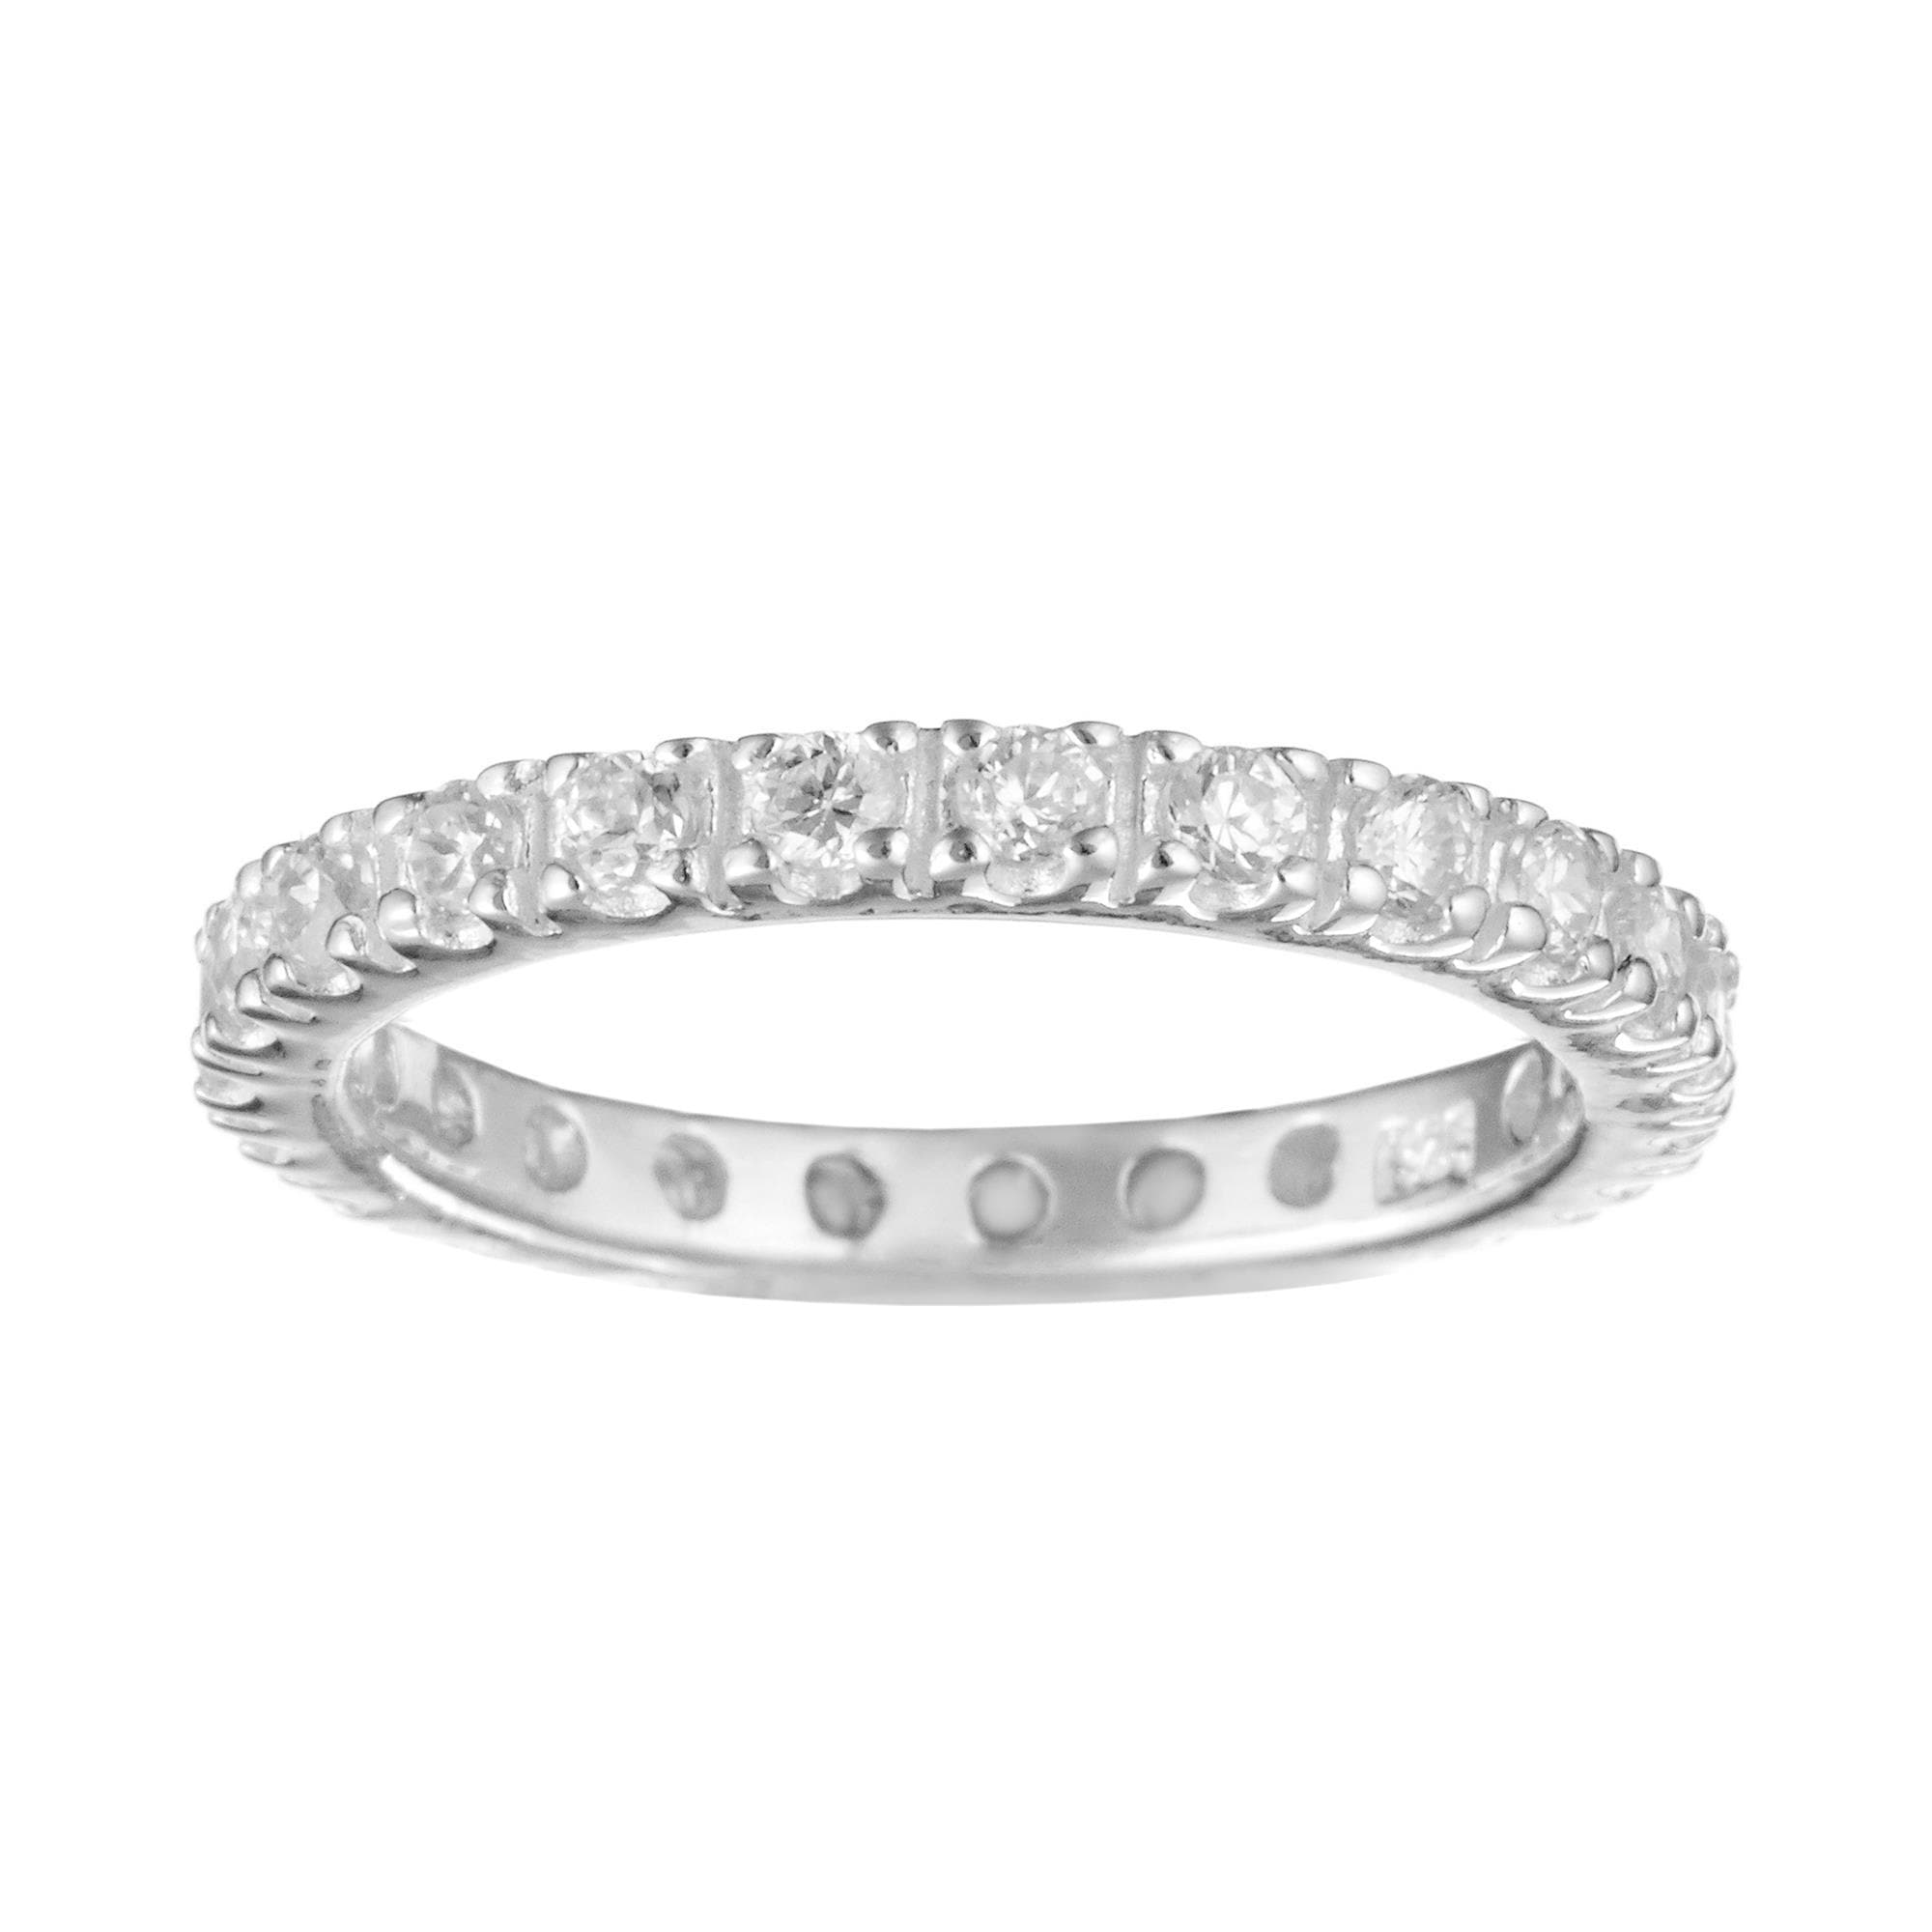 ring diamond silver platinum gold cz bands band front wedding v baguette xml white sterling zirconia karat cubic sitemap channel eternity products